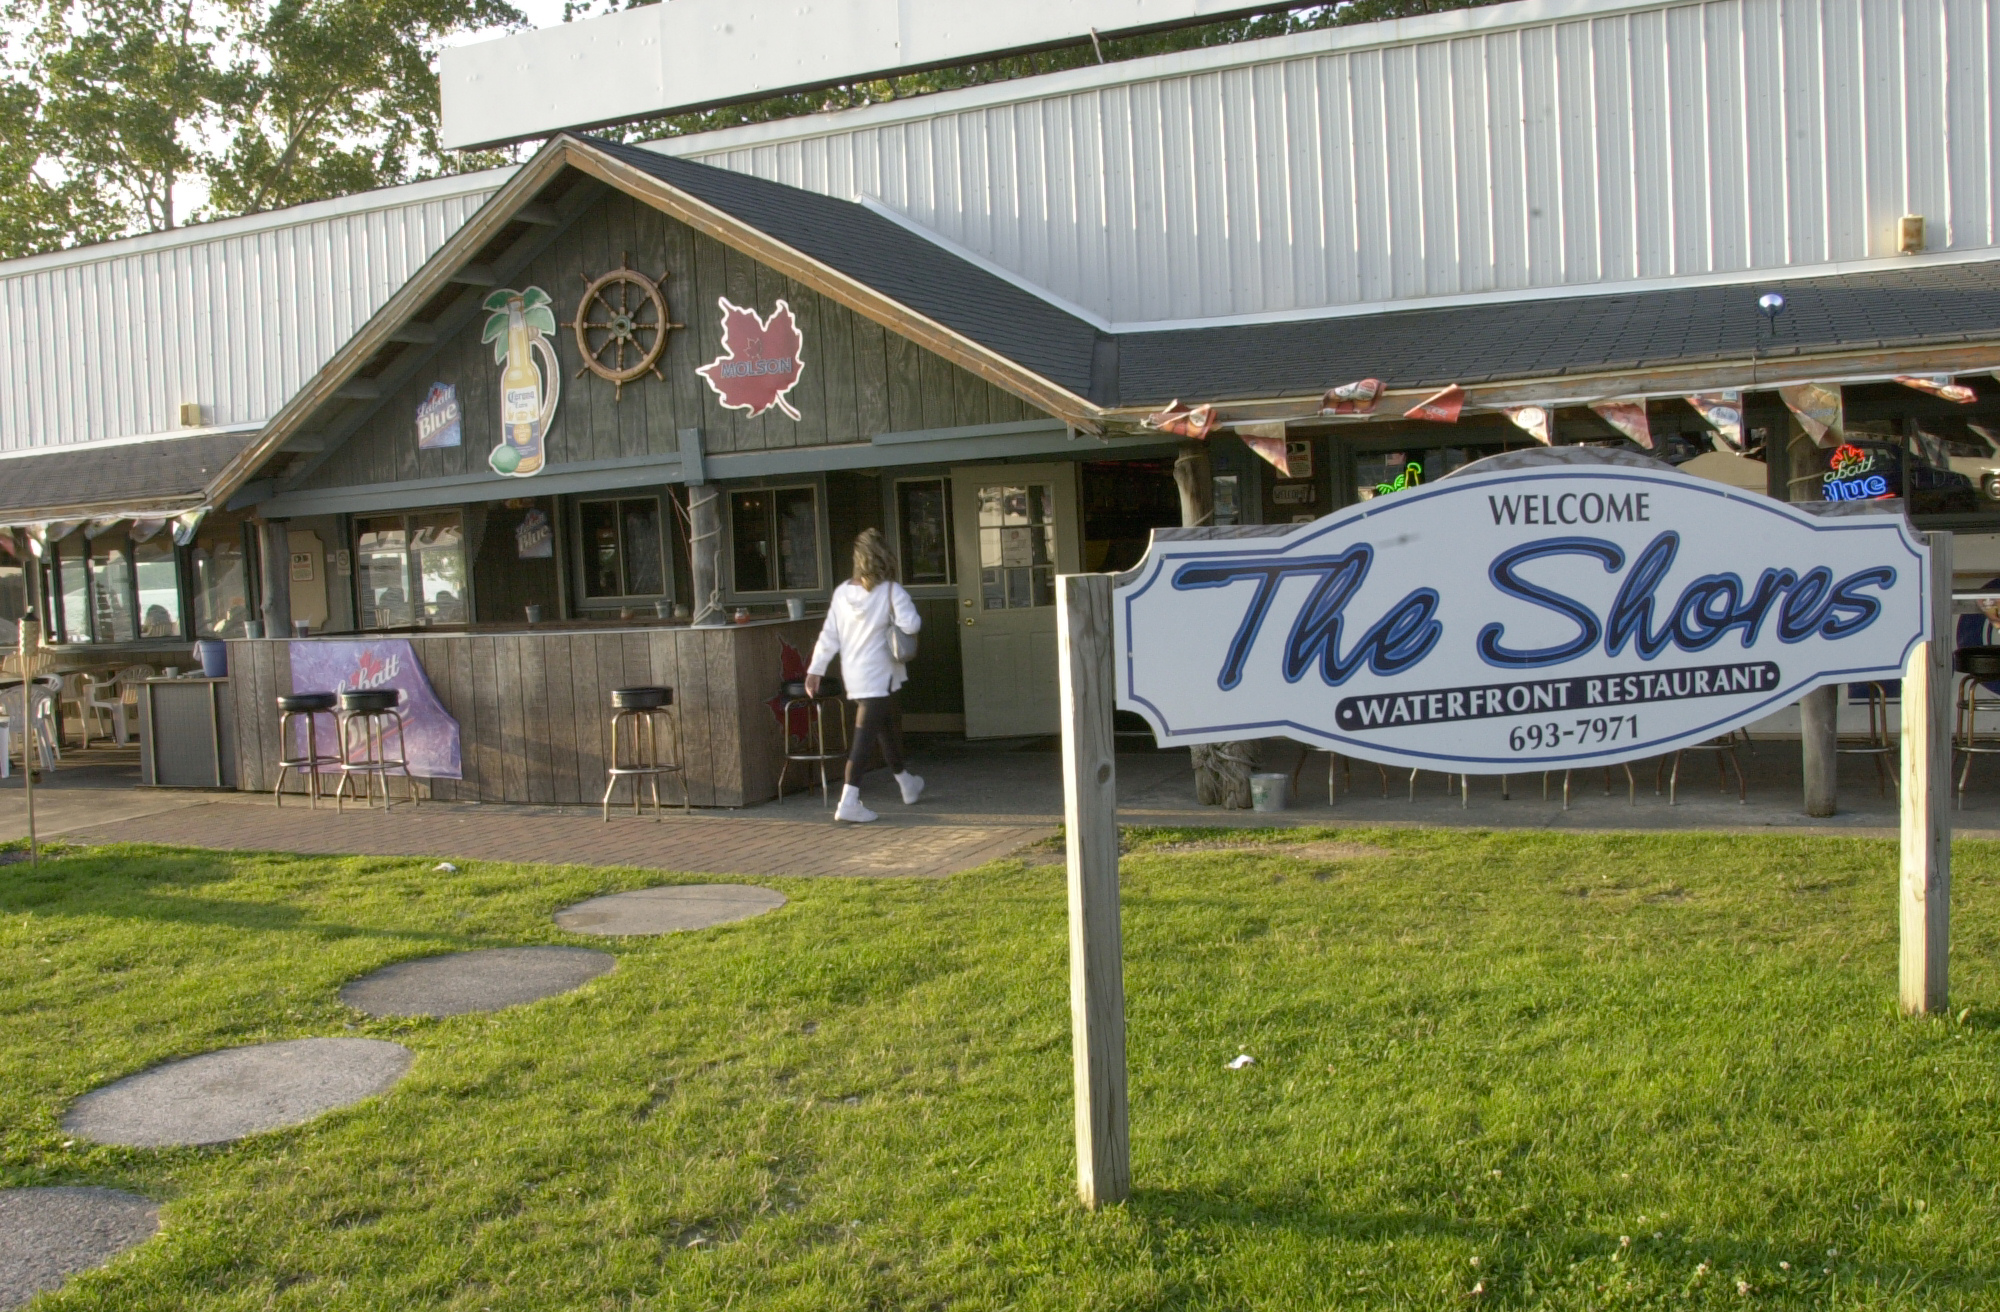 The Shores Waterfront Restaurant in North Tonawanda. (News file photo)